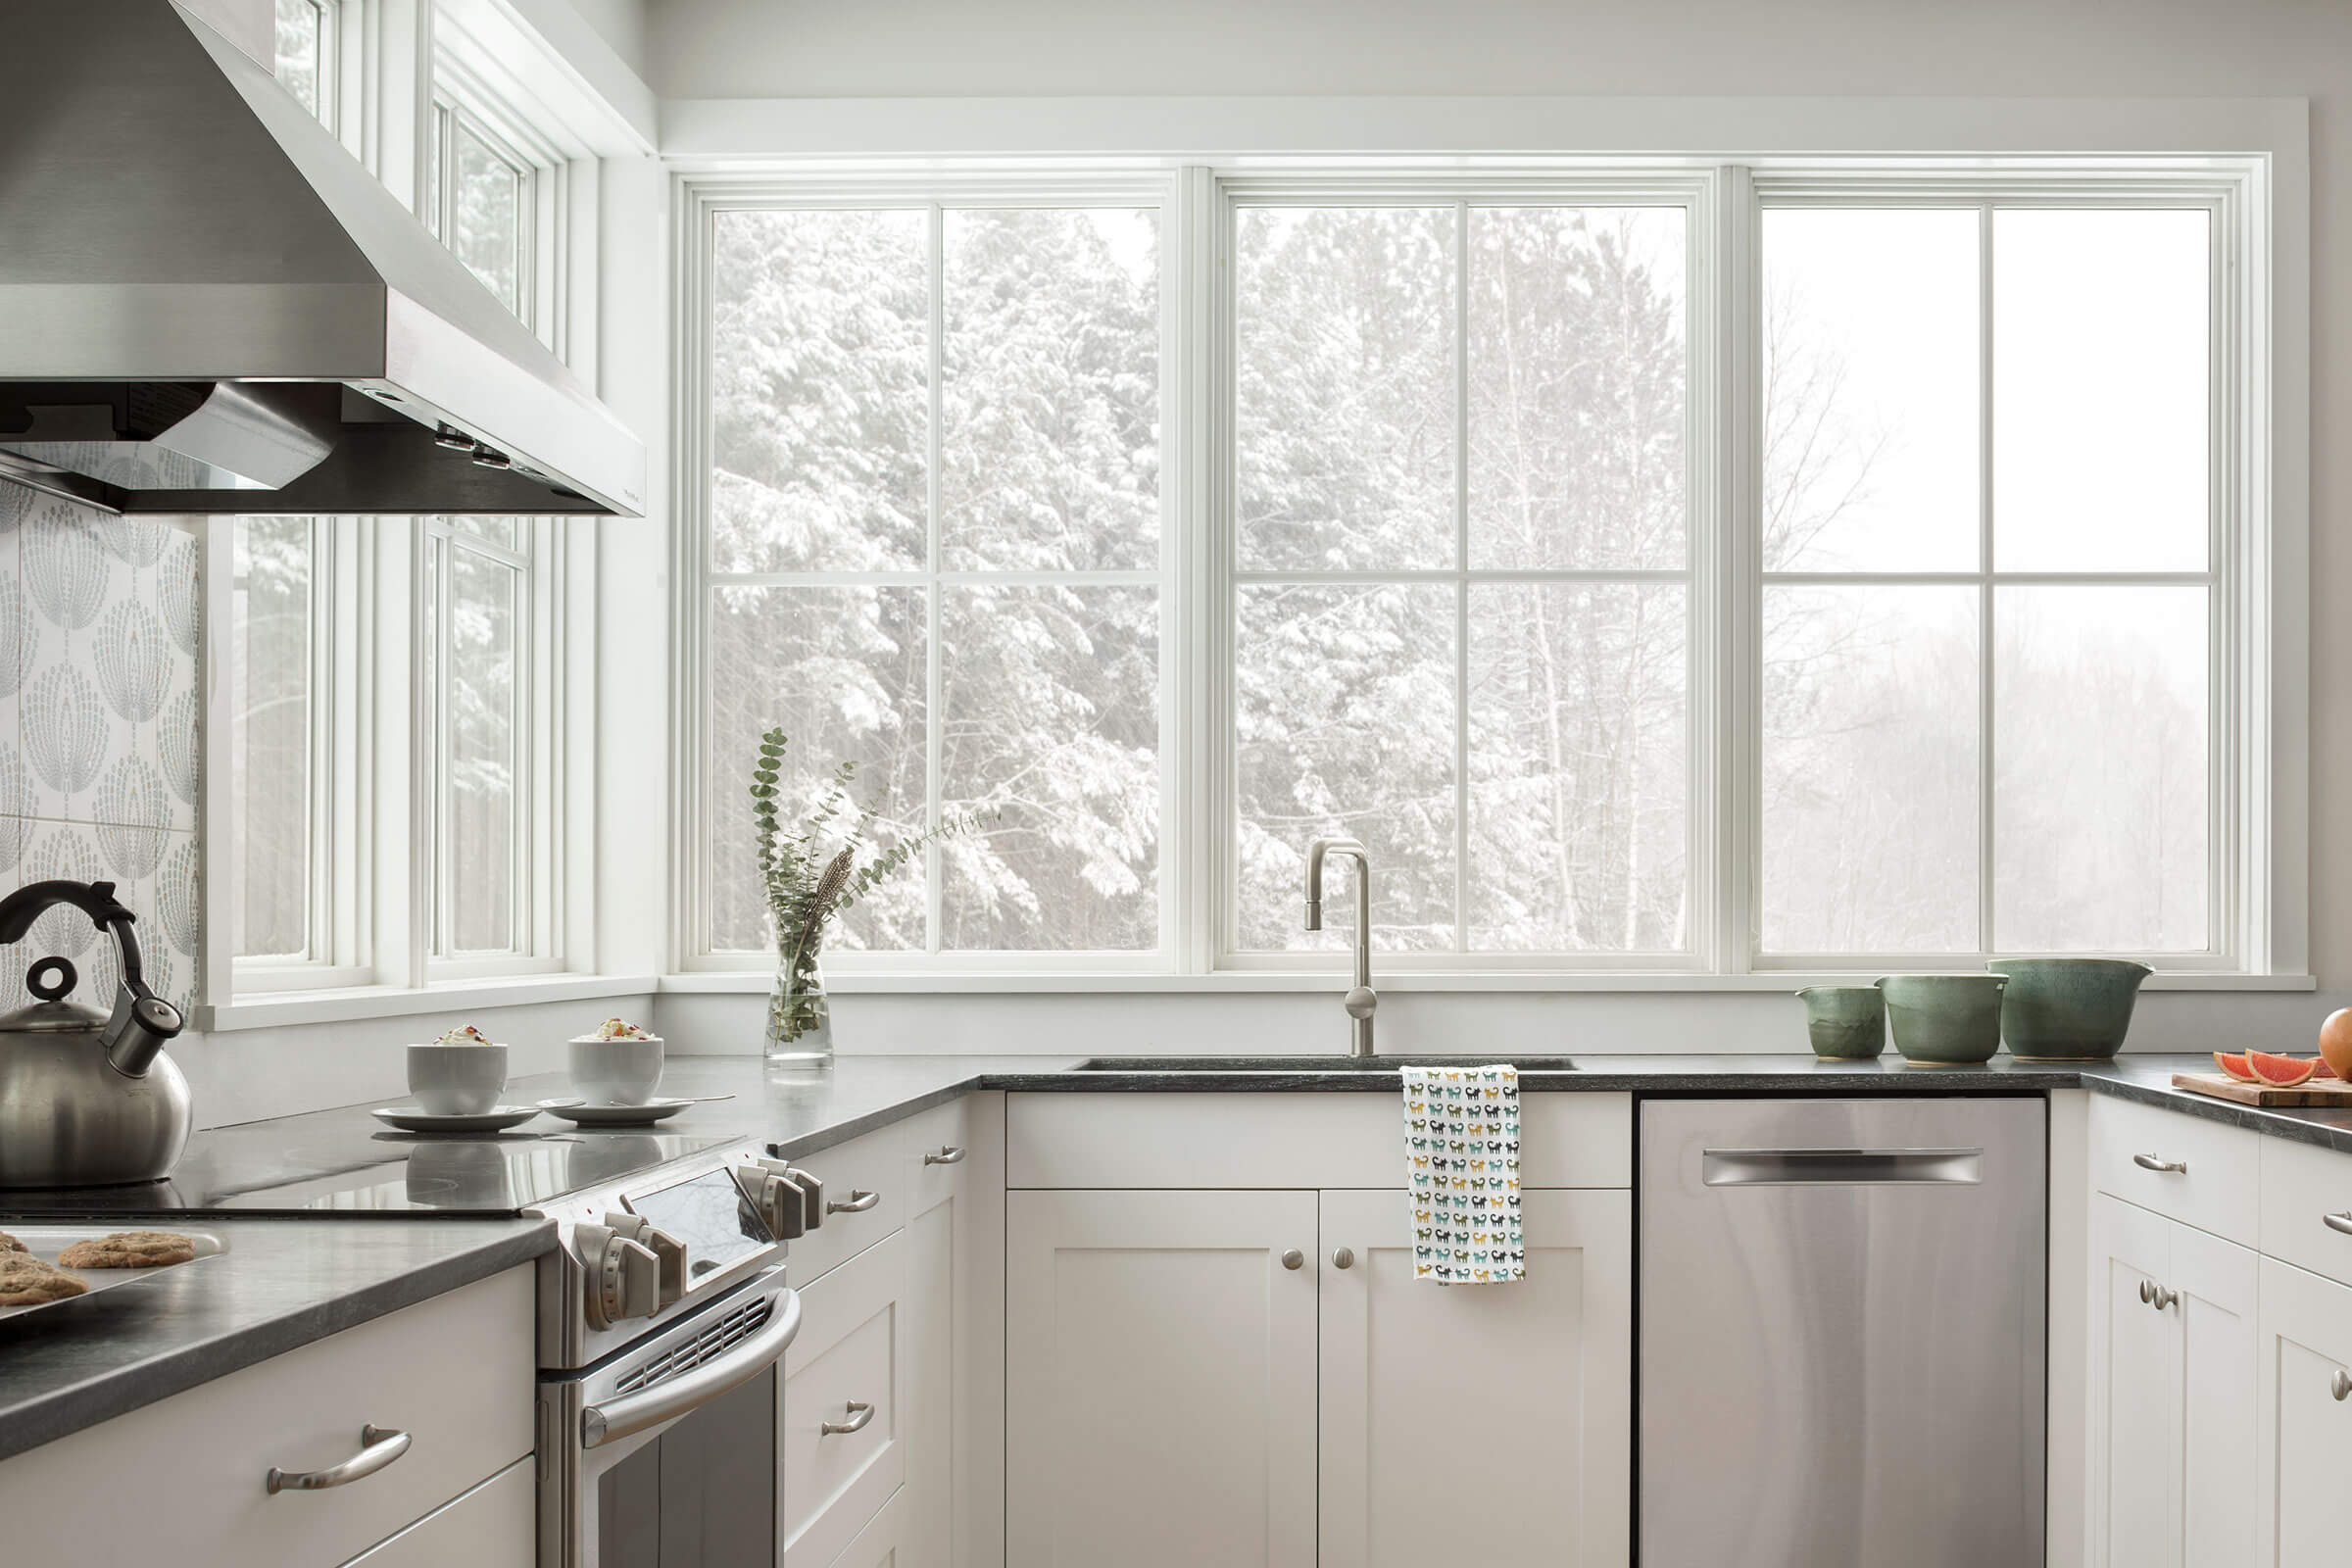 Interior View Of Kitchen With Elevate Double Hung Windows